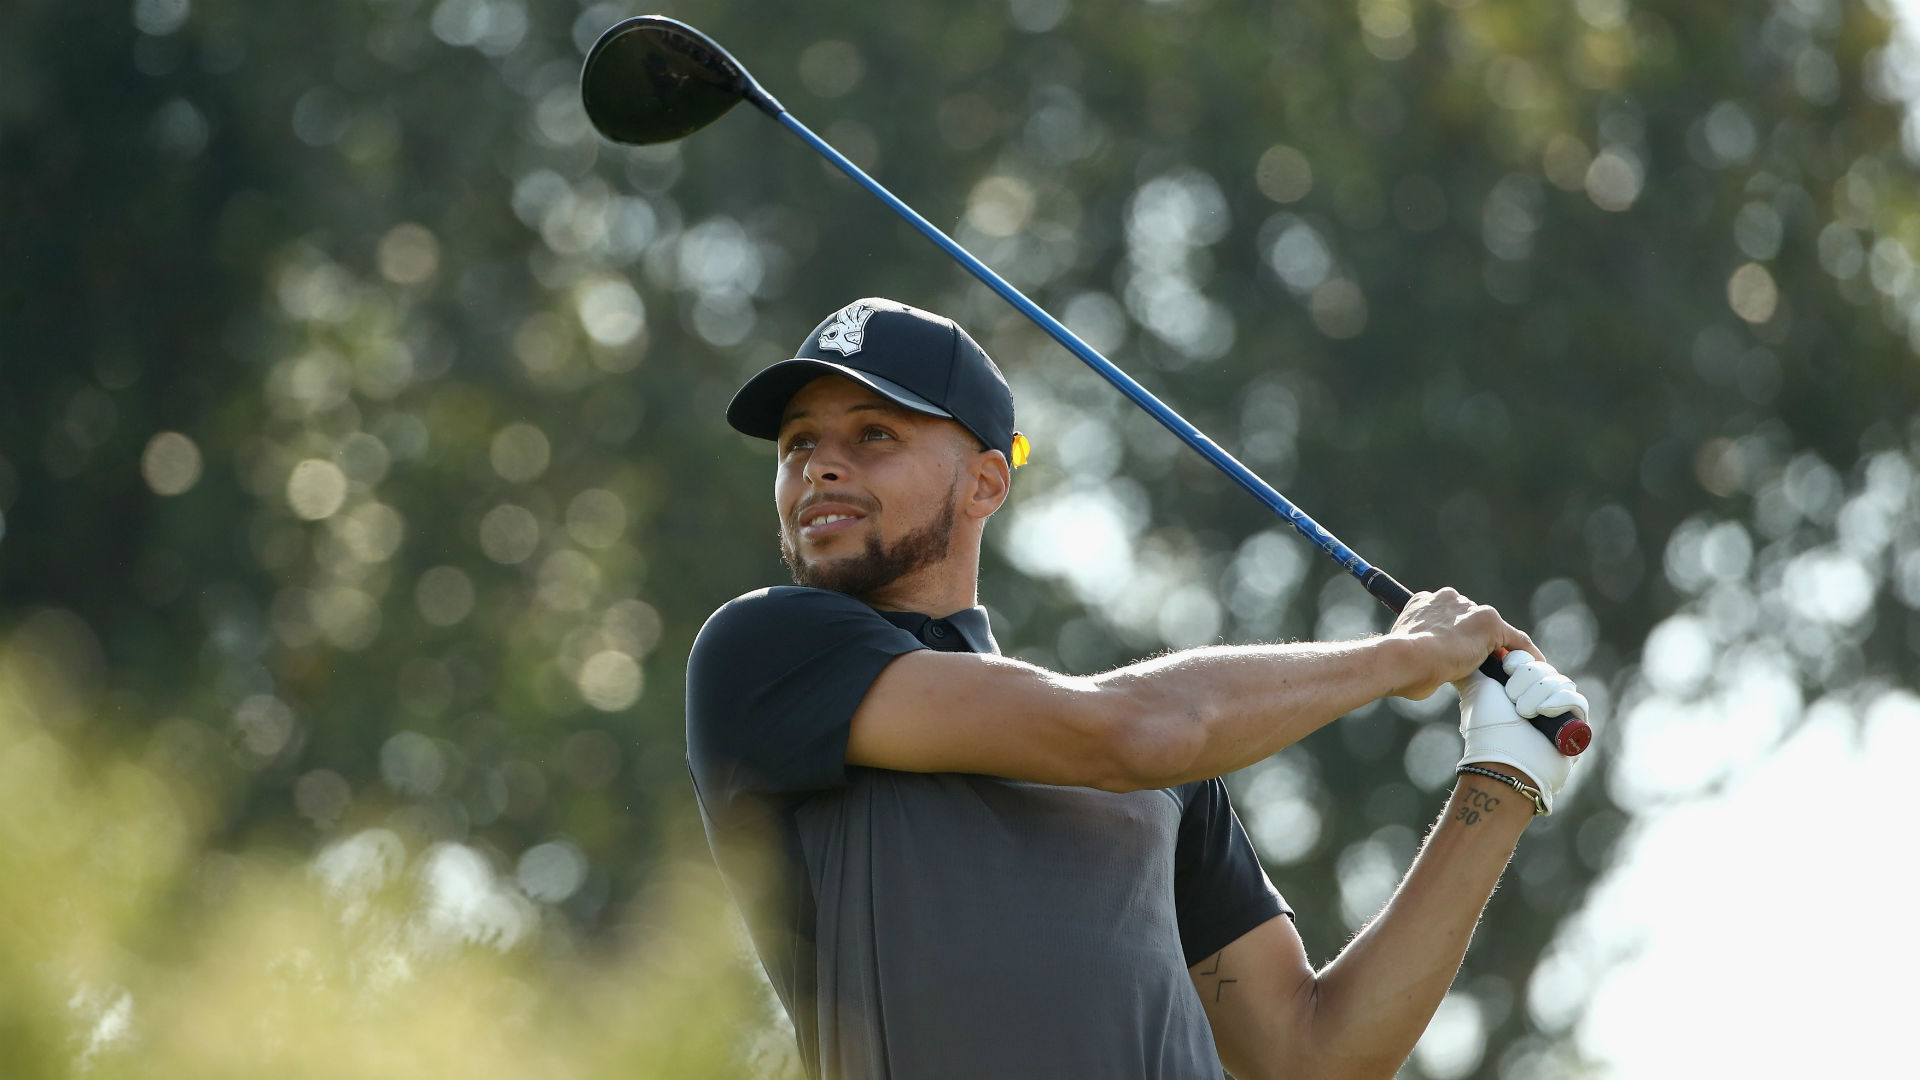 Stephen Curry shoots 71 in return to Web.com Tour